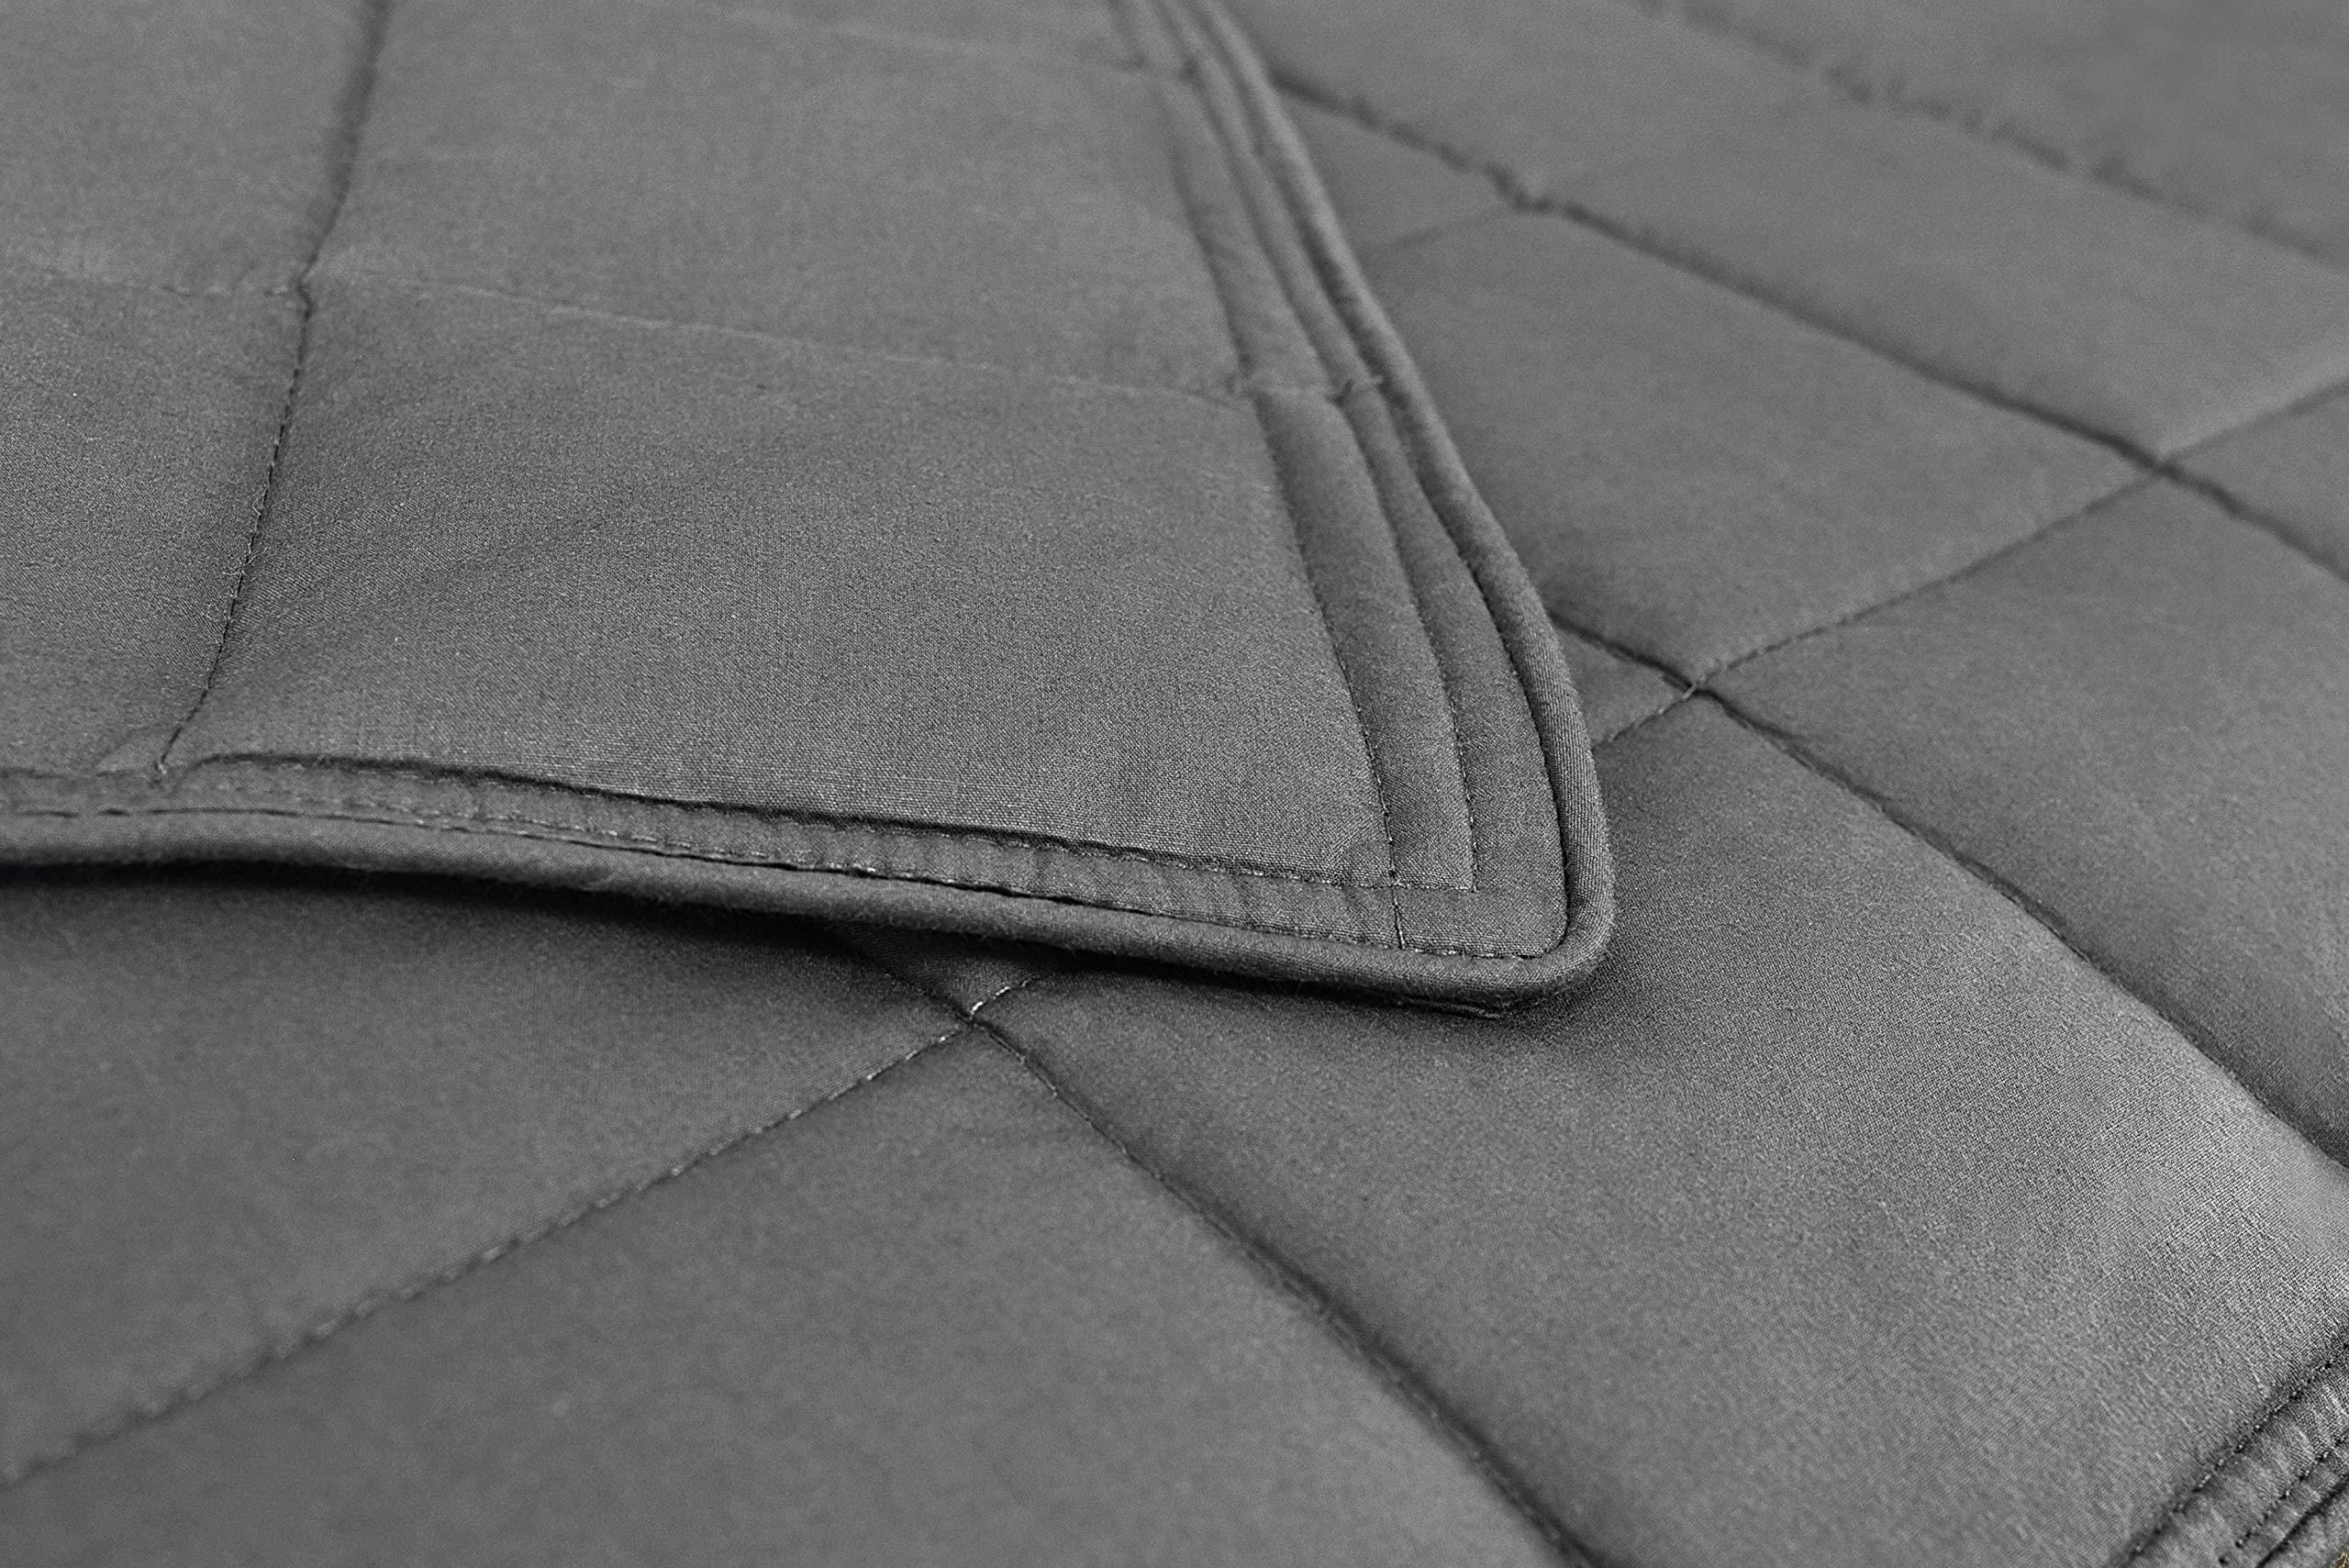 AckBrands 48'' x 78'' - 15 Lb Weighted Blanket - Slate Gray - Premium Cotton with Glass Beads - Double Stitched Edges - Veteran Owned by AckBrands